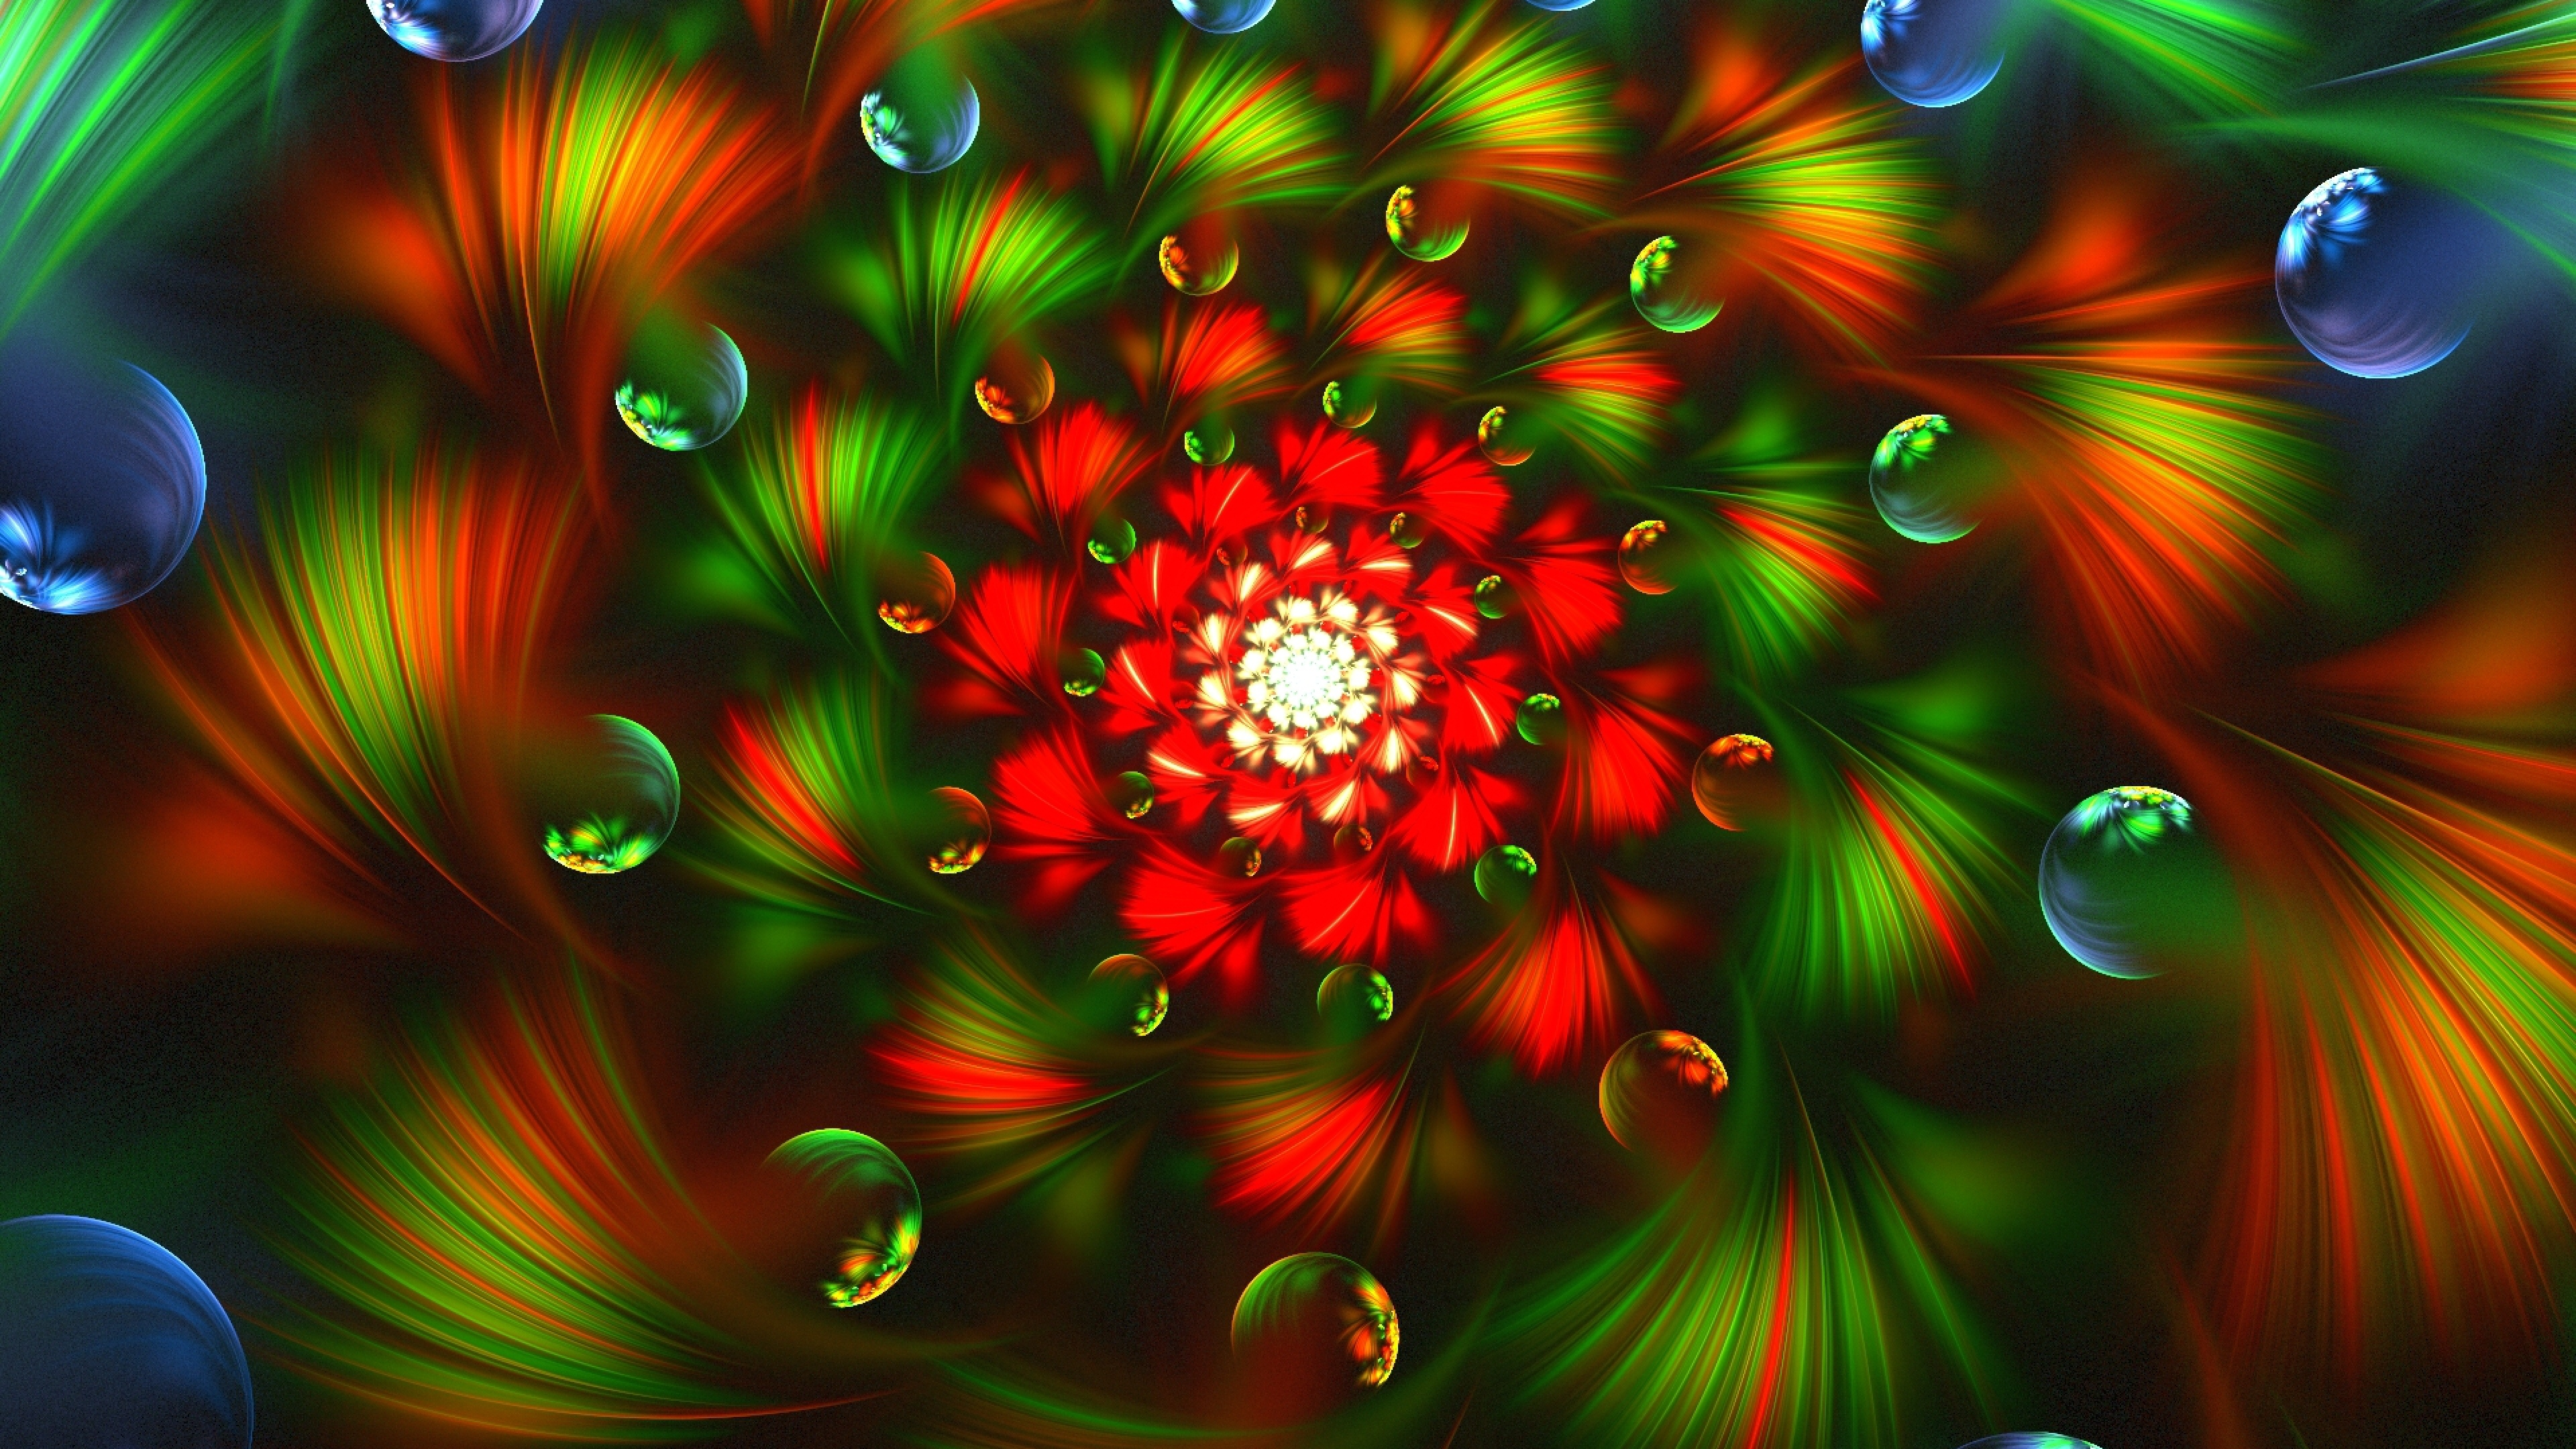 Wallpaper 3840x2160 3d abstract fractal colorful bright 4K 3840x2160